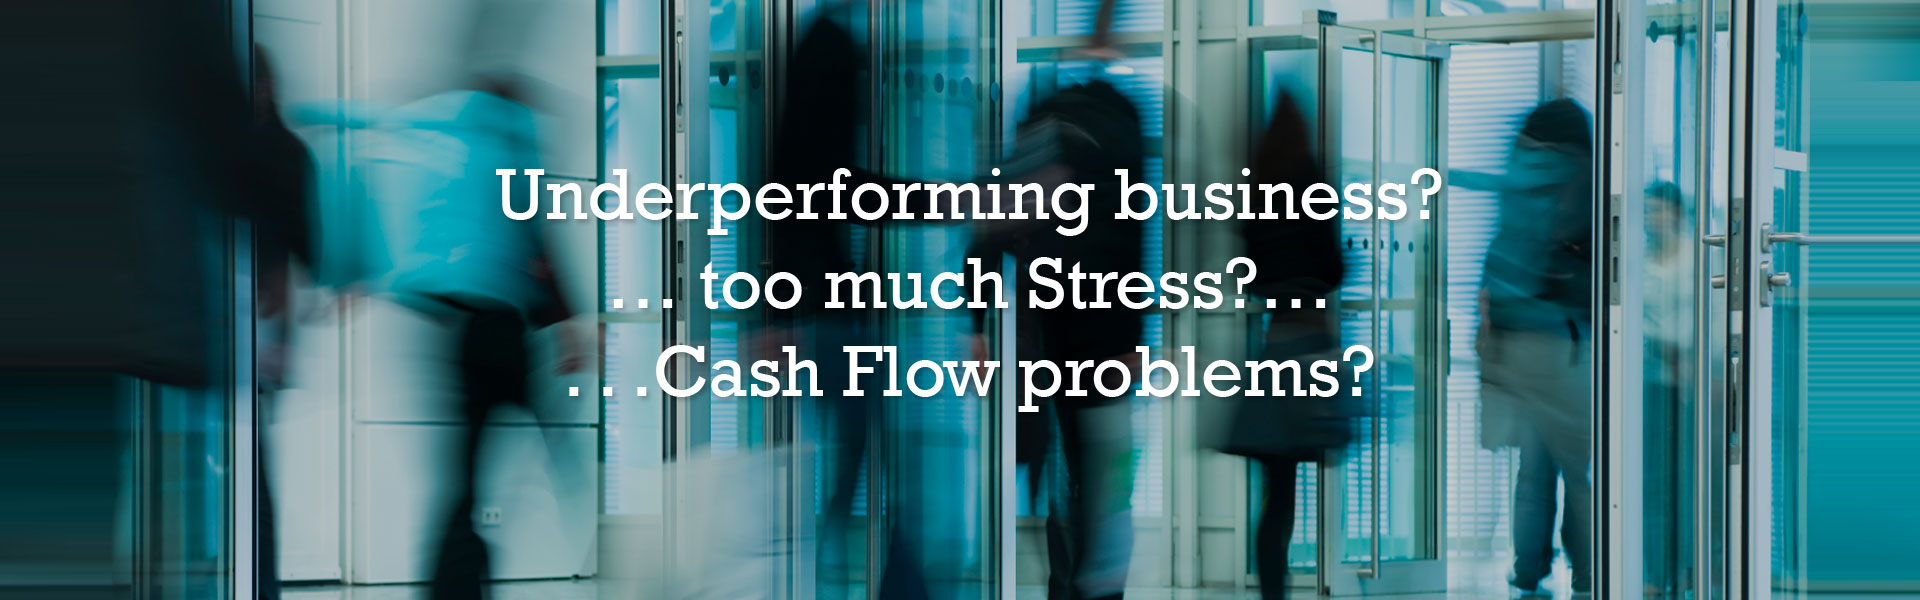 Underperforming business?...too much Stress?...Cash Flow problems?